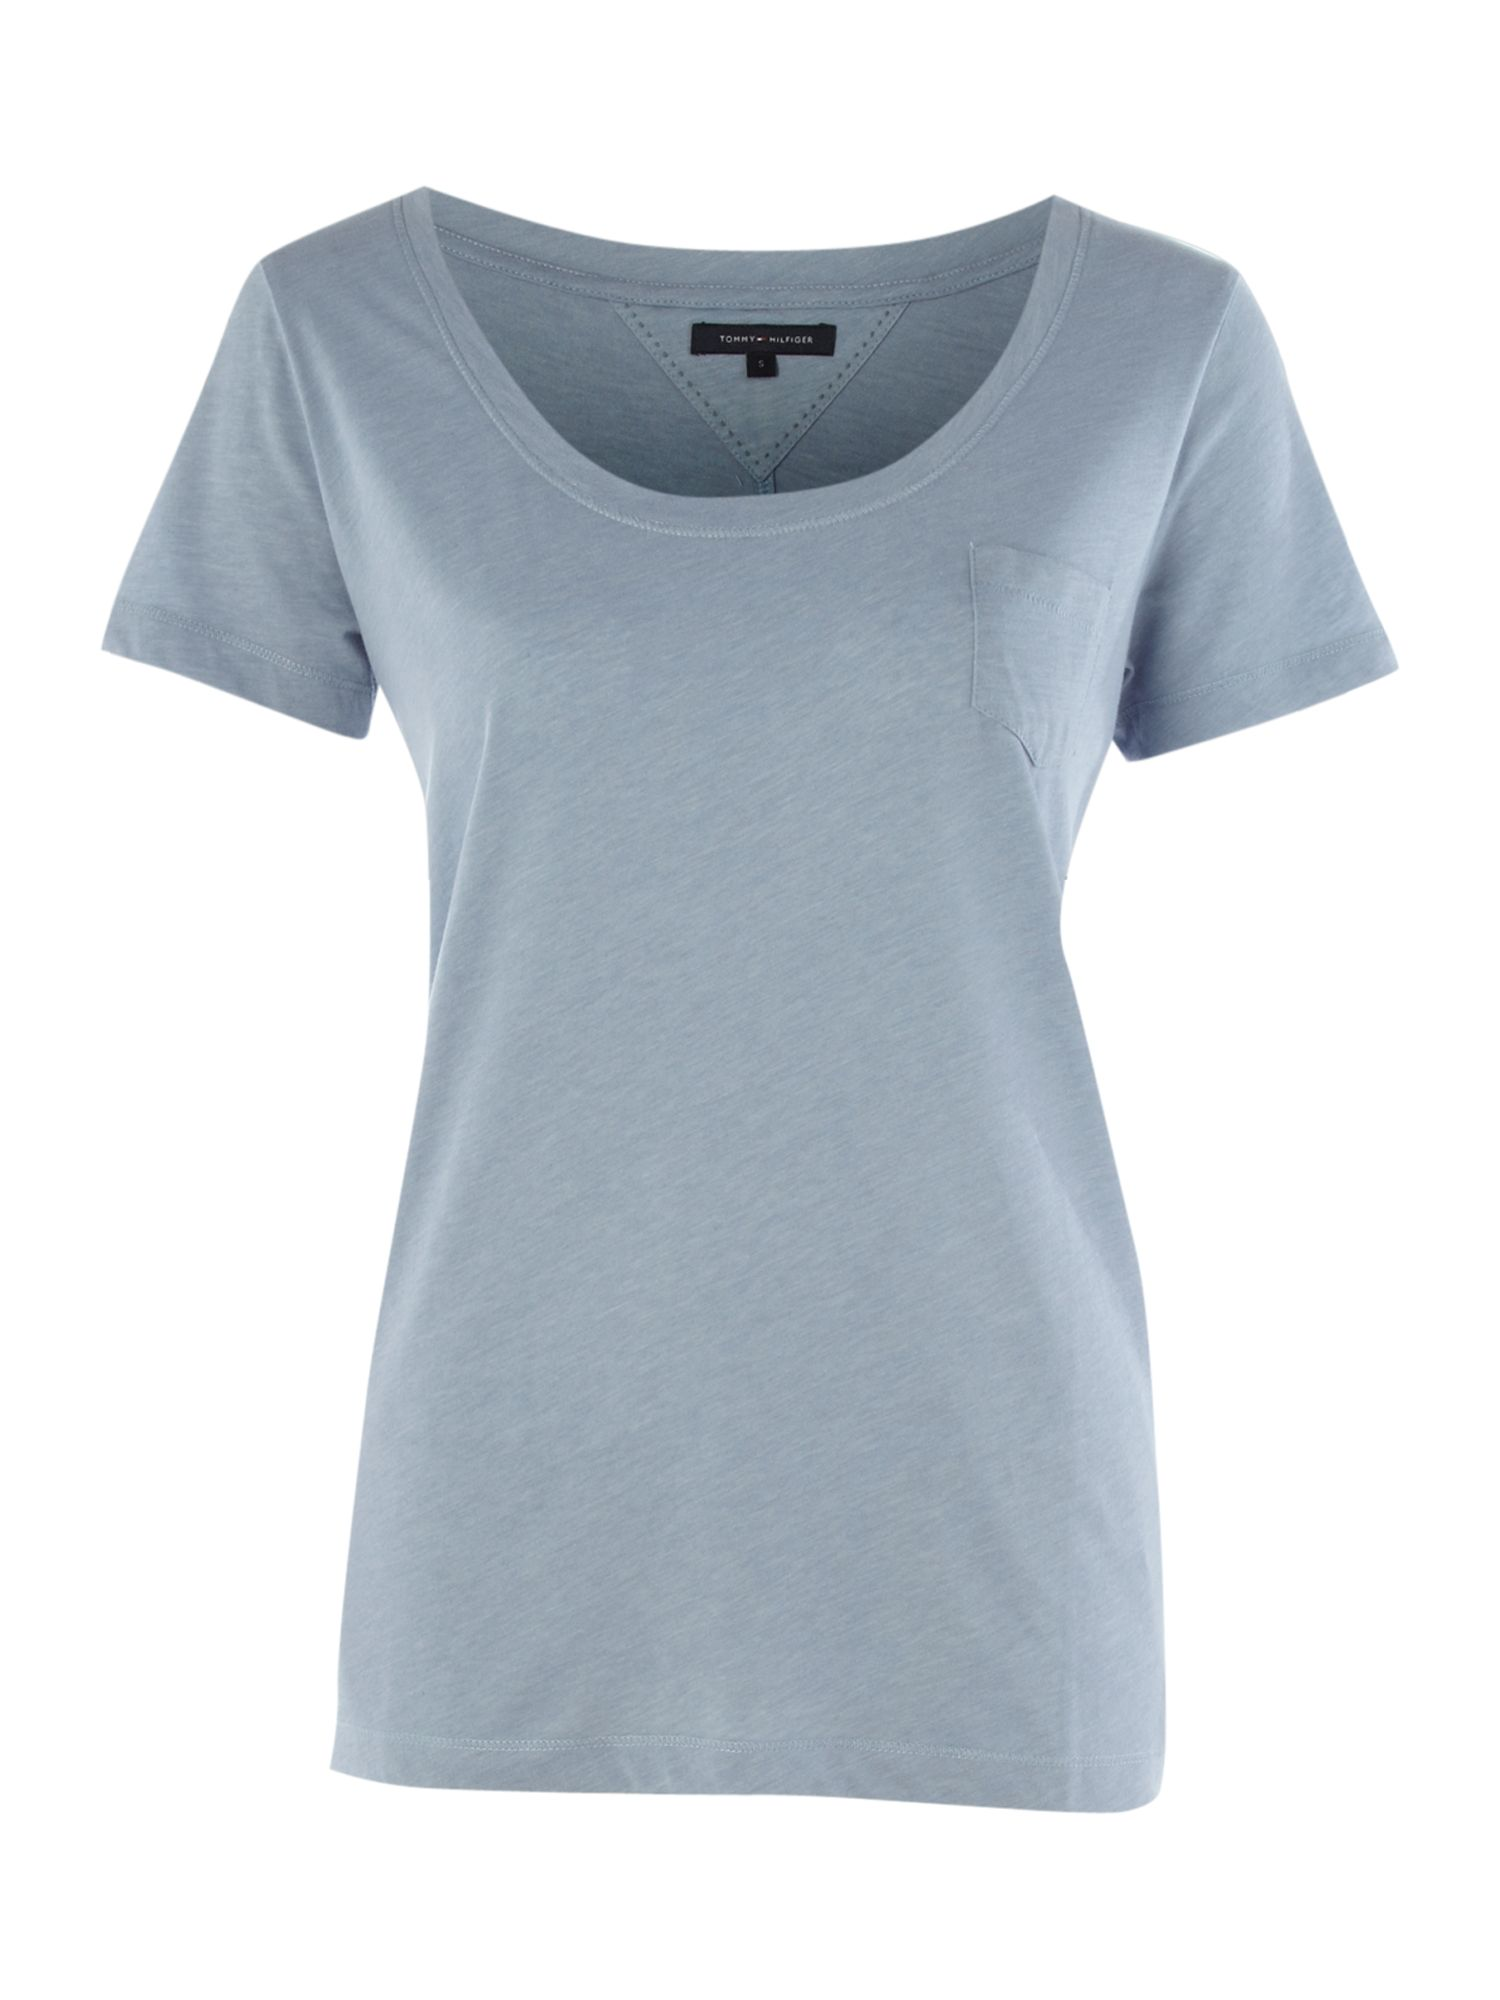 Tommy Hilfiger Luisa boyfriend t-shirt - Taupe product image